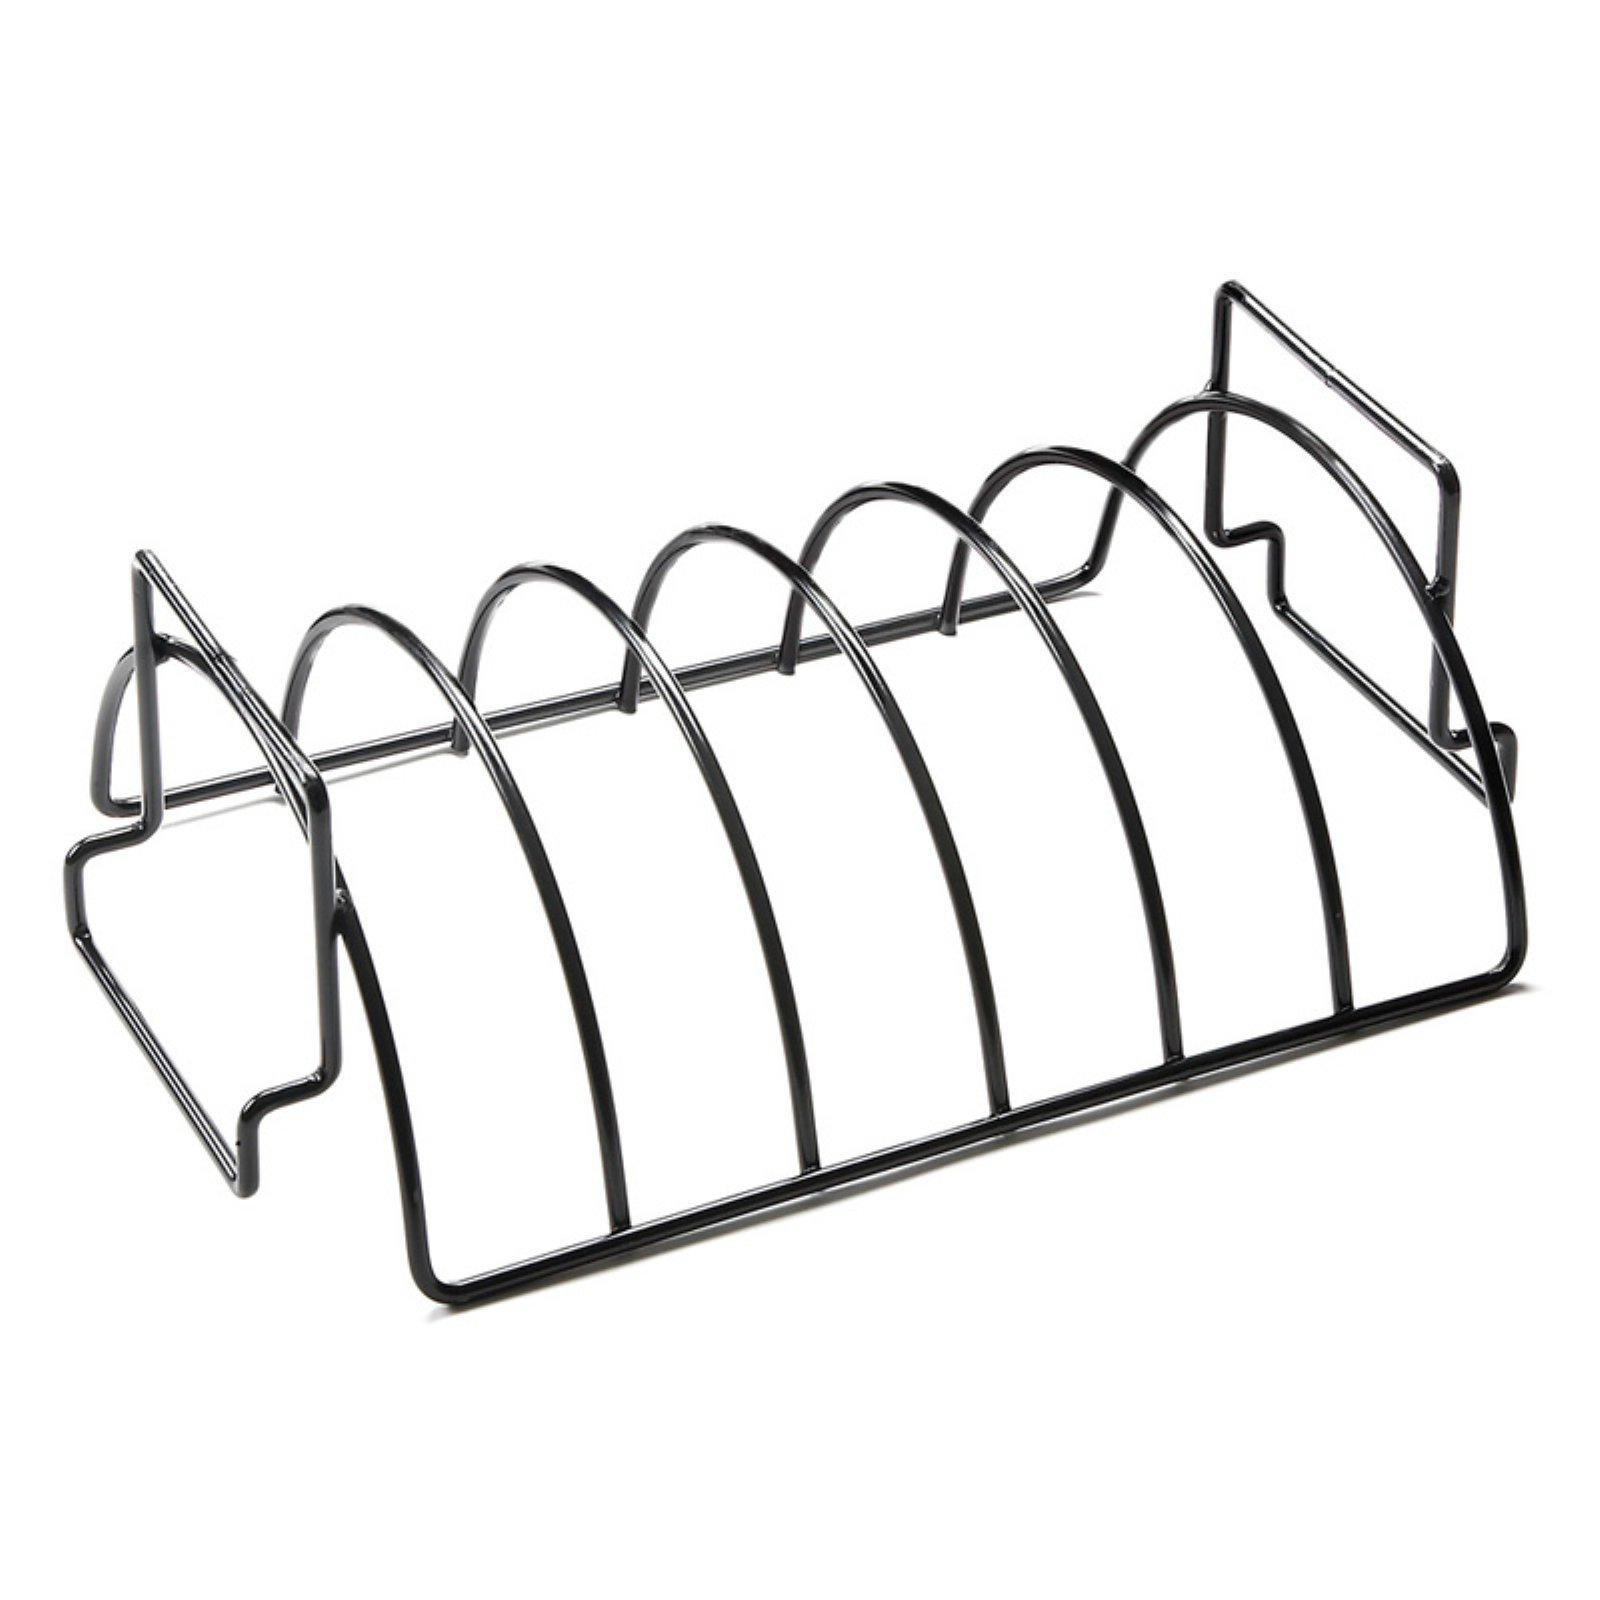 Outset Dual Rib or Turkey Roasting Rack by Outset